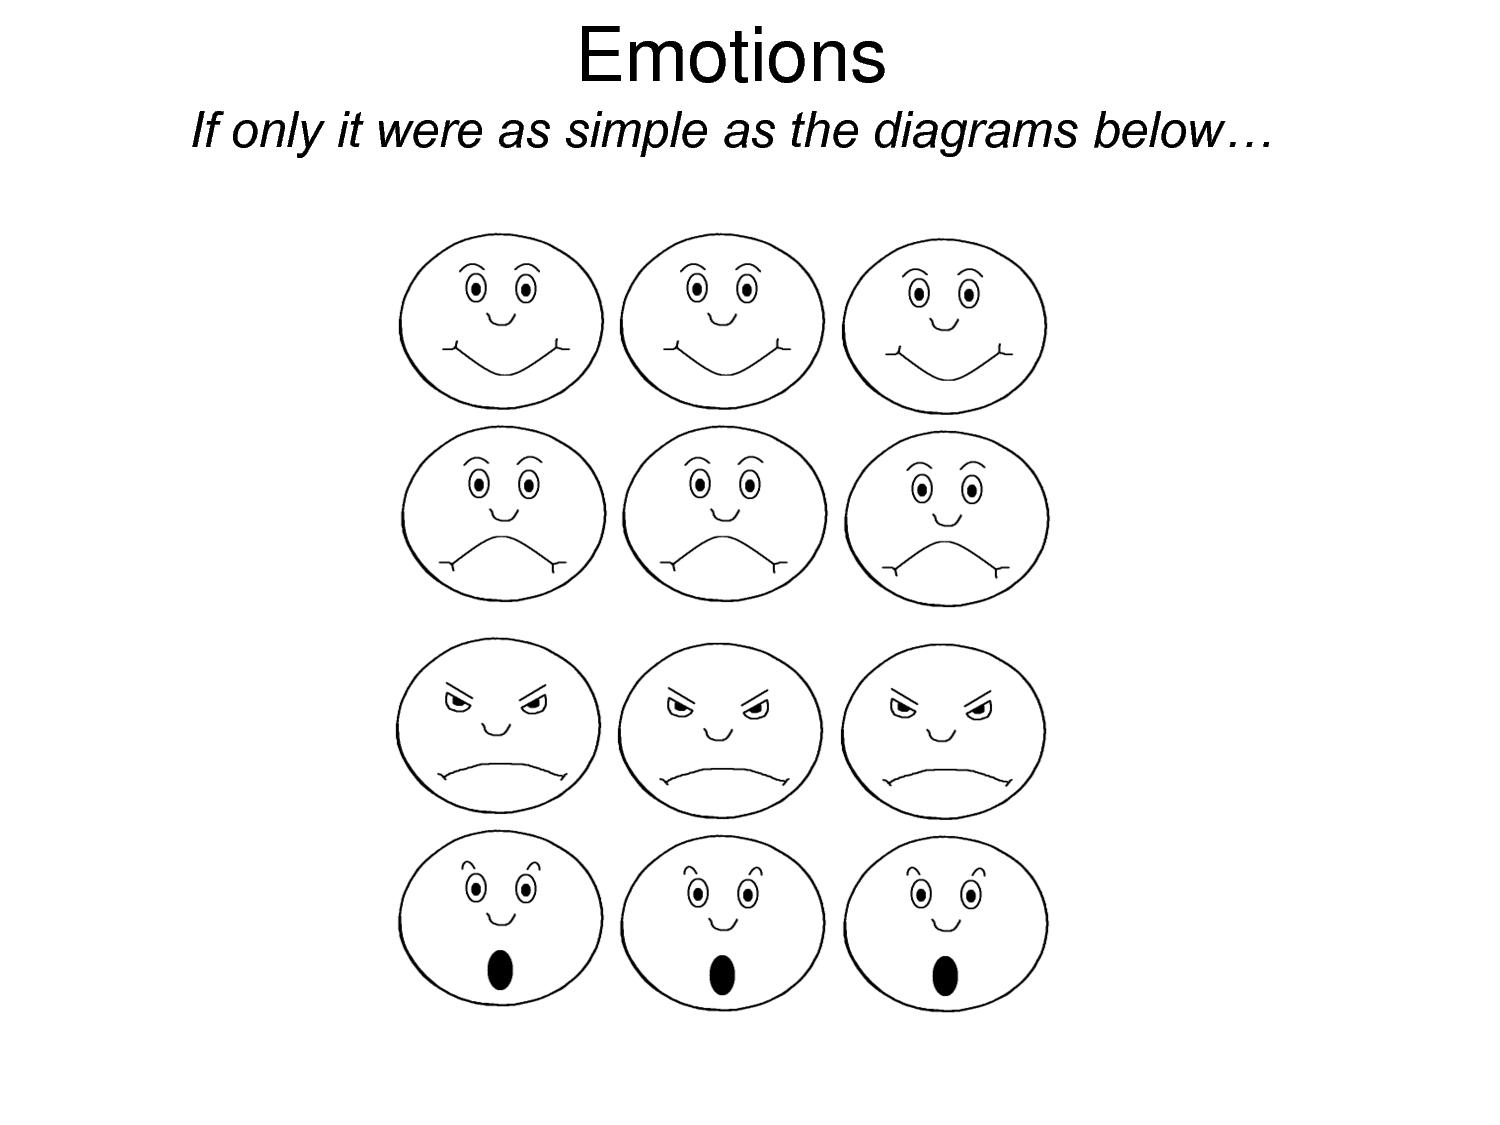 Emotions And Feelings Coloring Pages Download And Print For Free